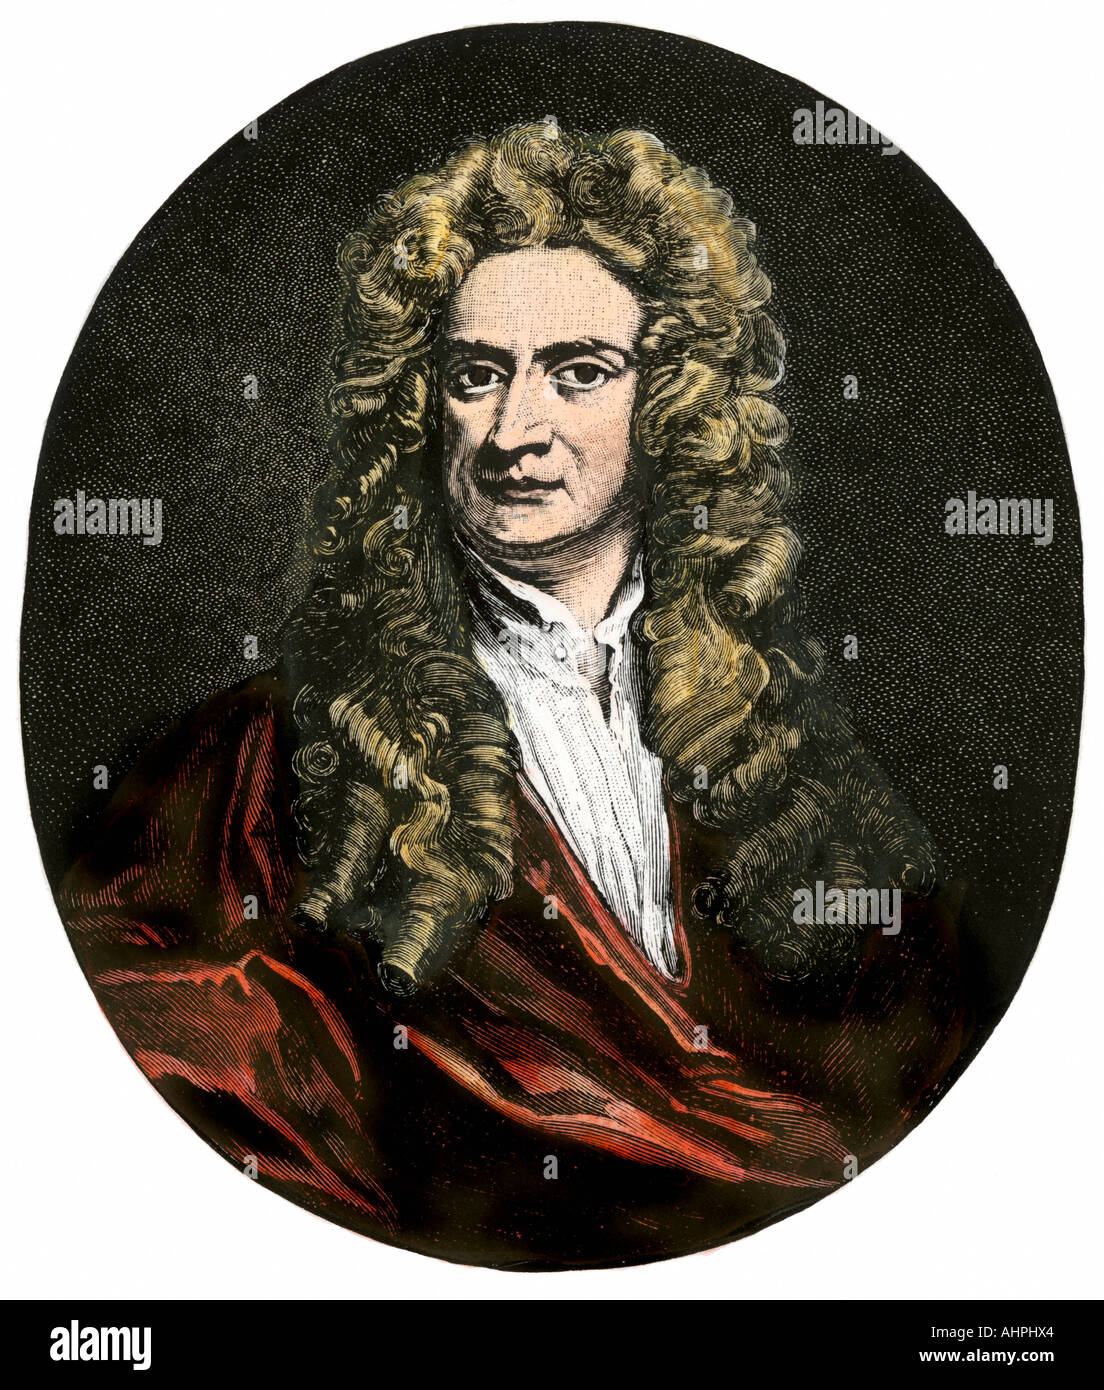 Sir Isaac Newton. Hand-colored woodcut - Stock Image